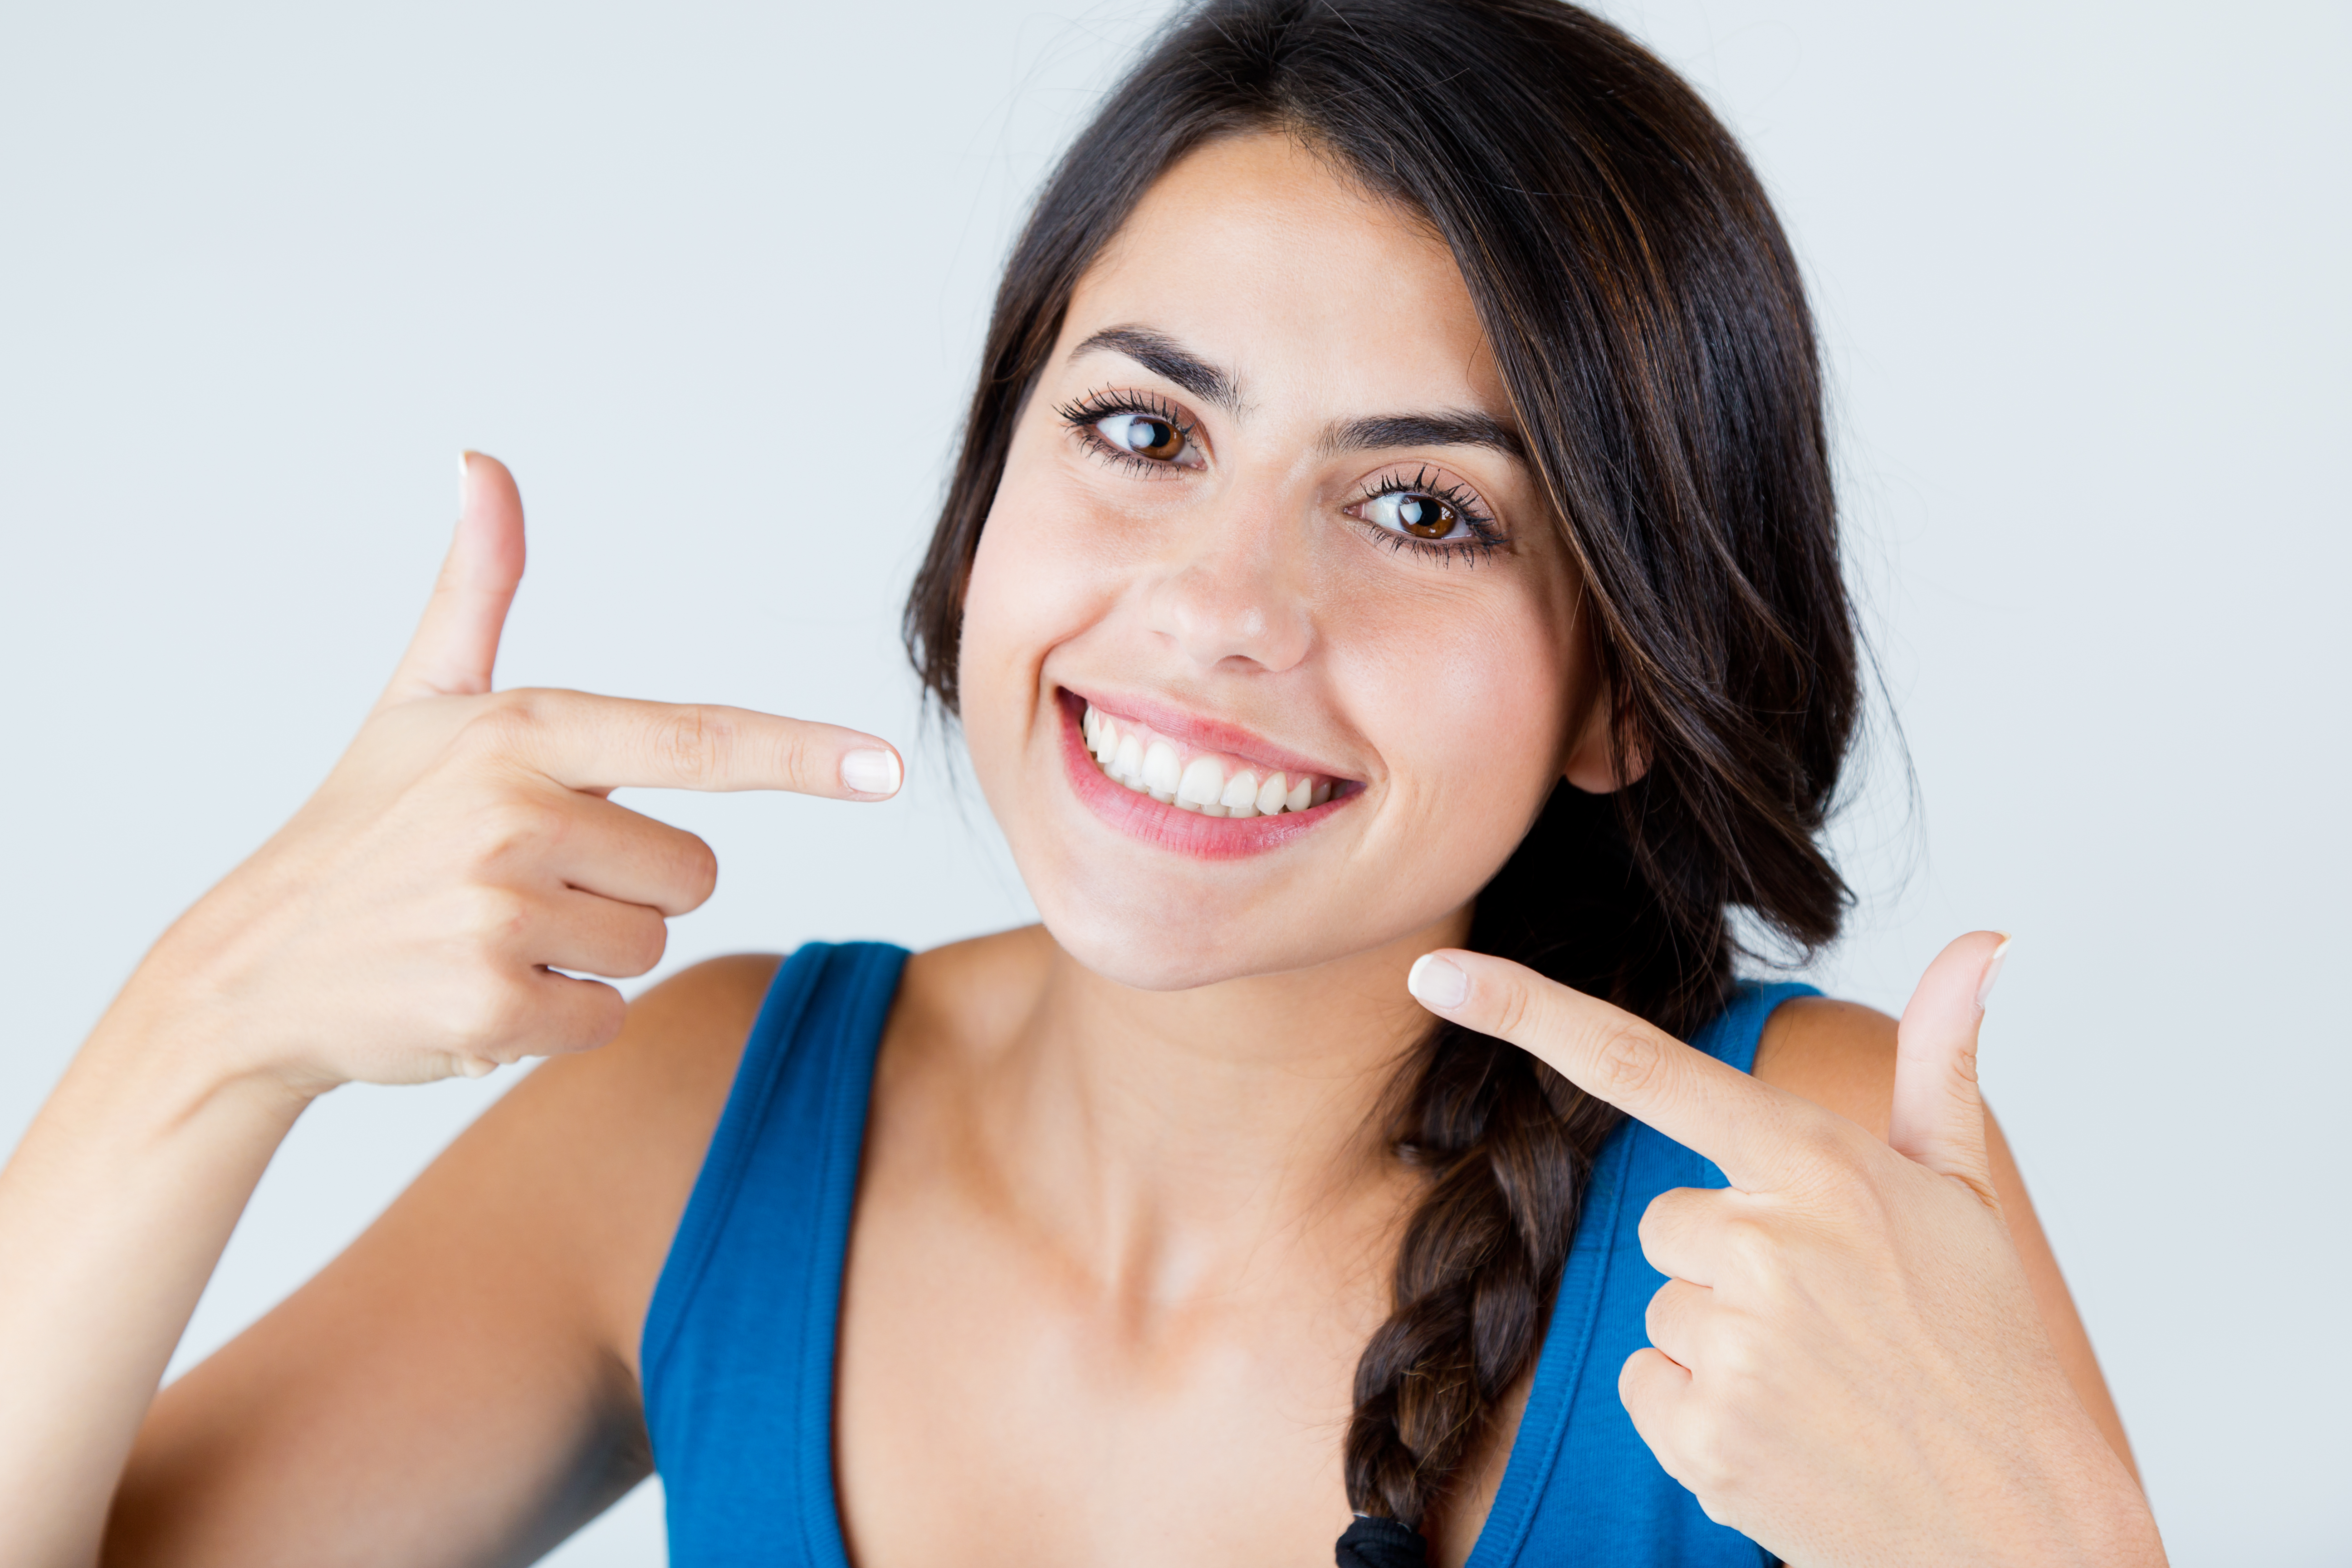 Where can I get a teeth cleaning in Orlando?